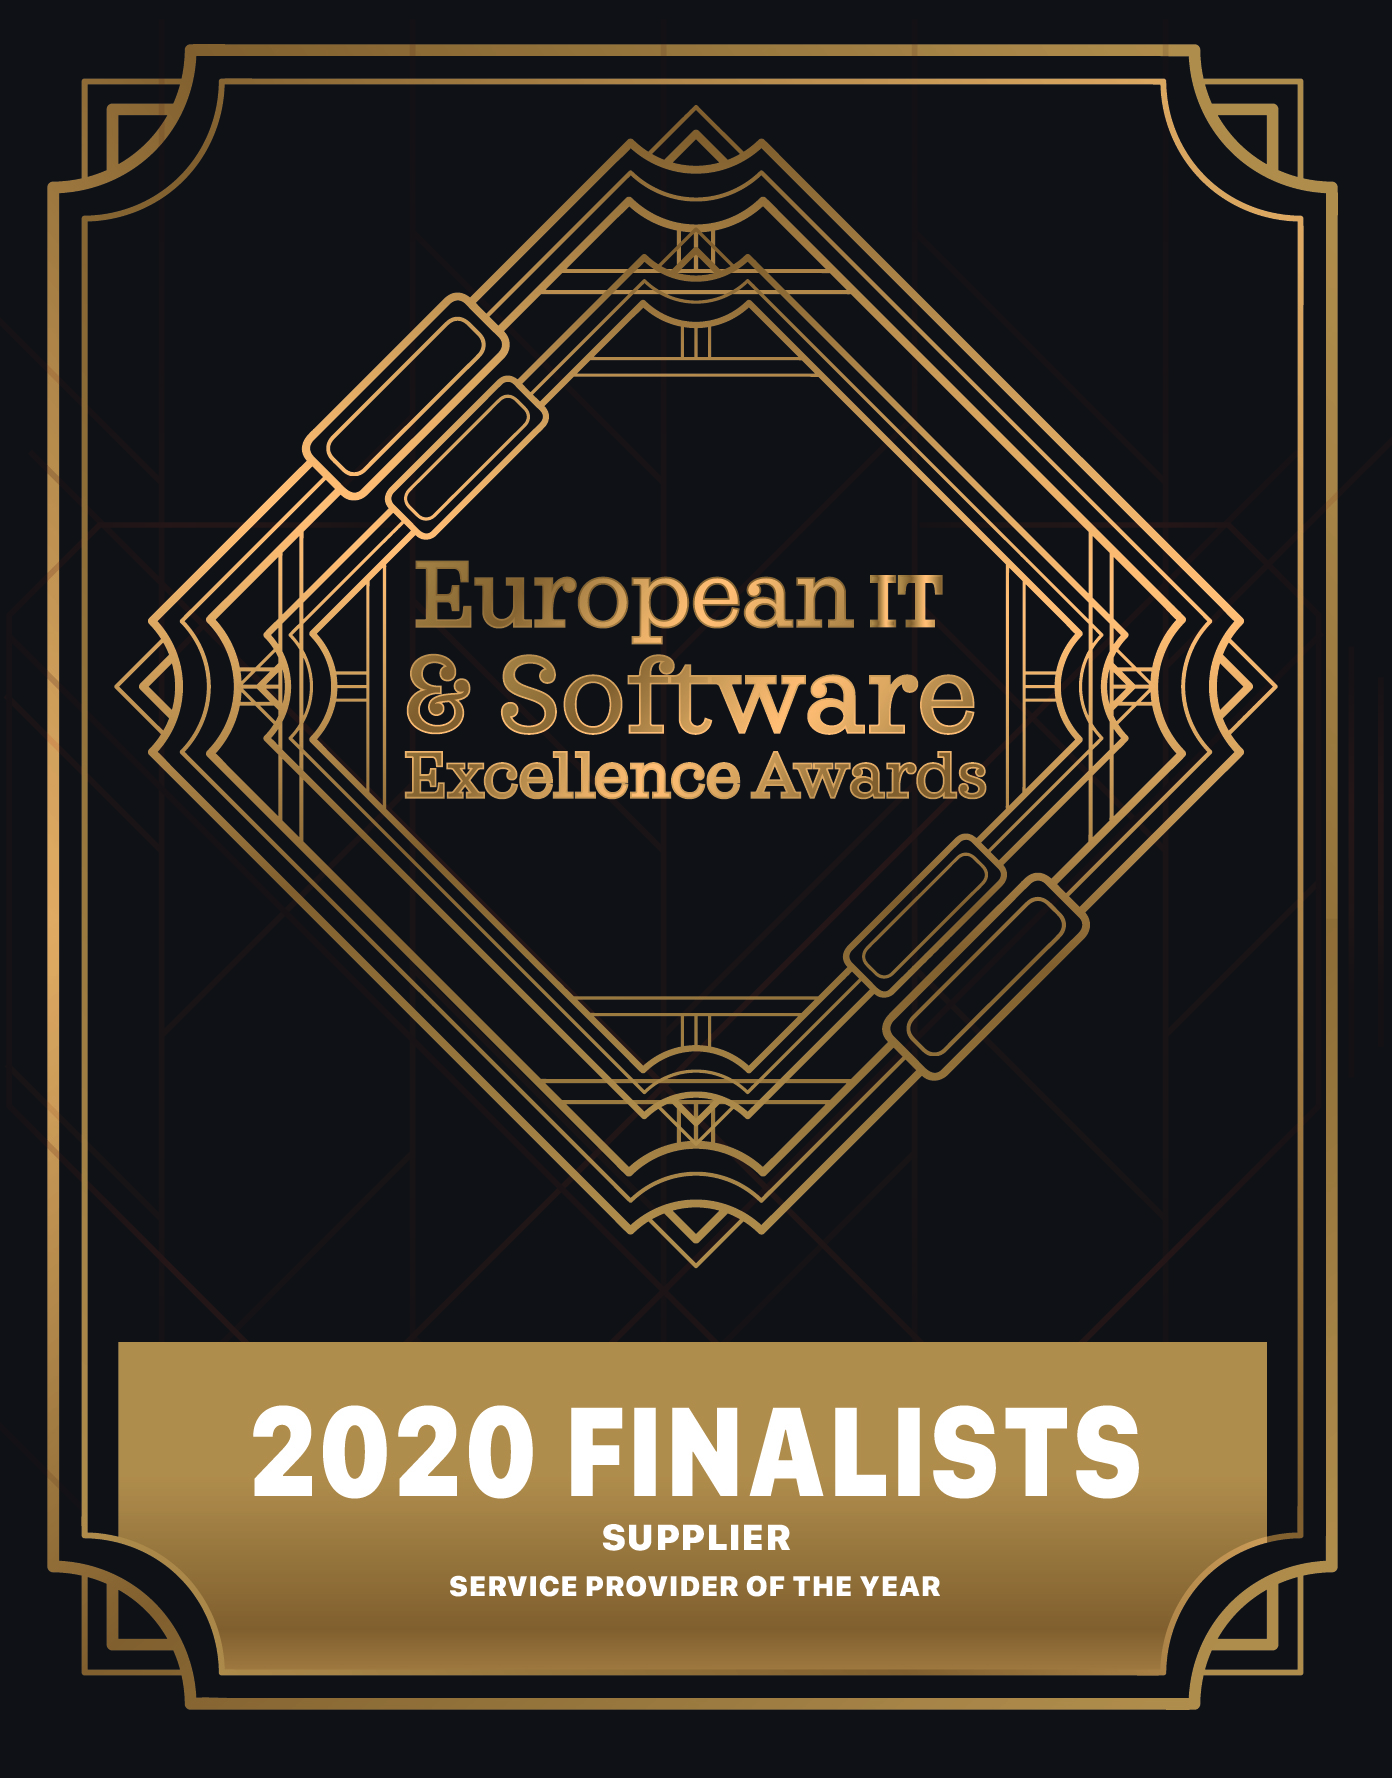 European IT & Software Excellence Awards 2020